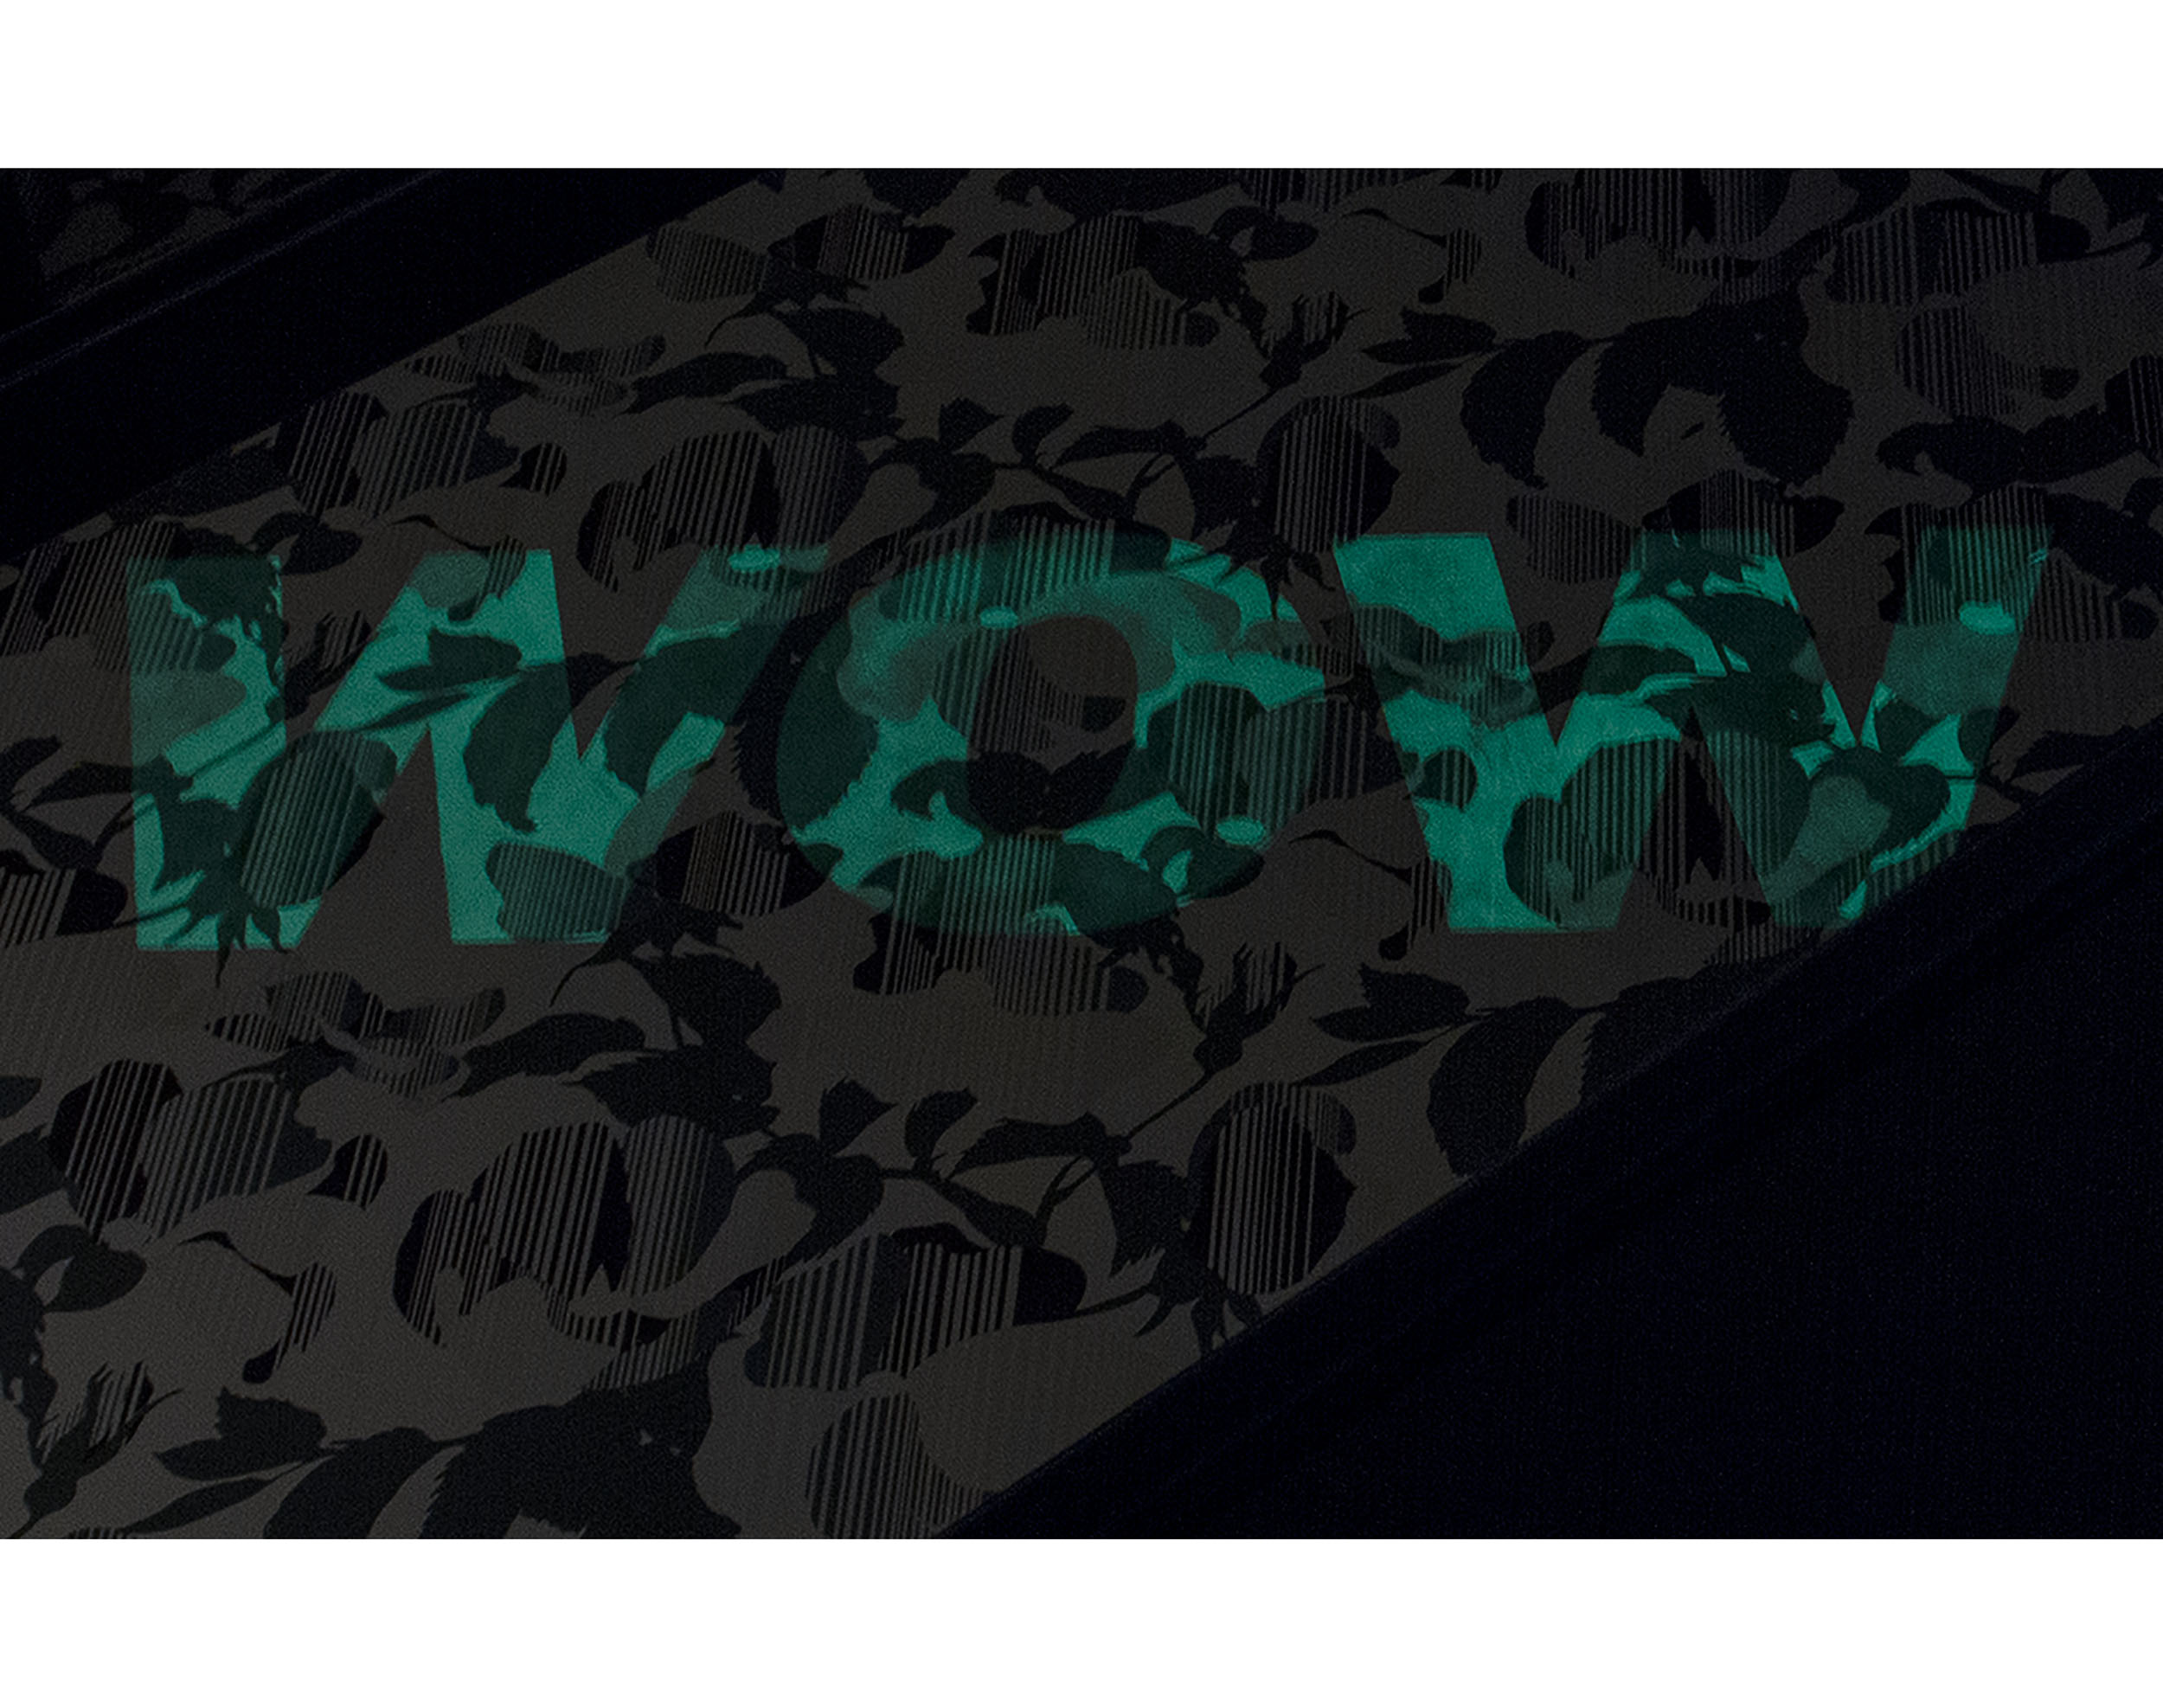 Glow in the dark element on Coded Rose Wallpaper